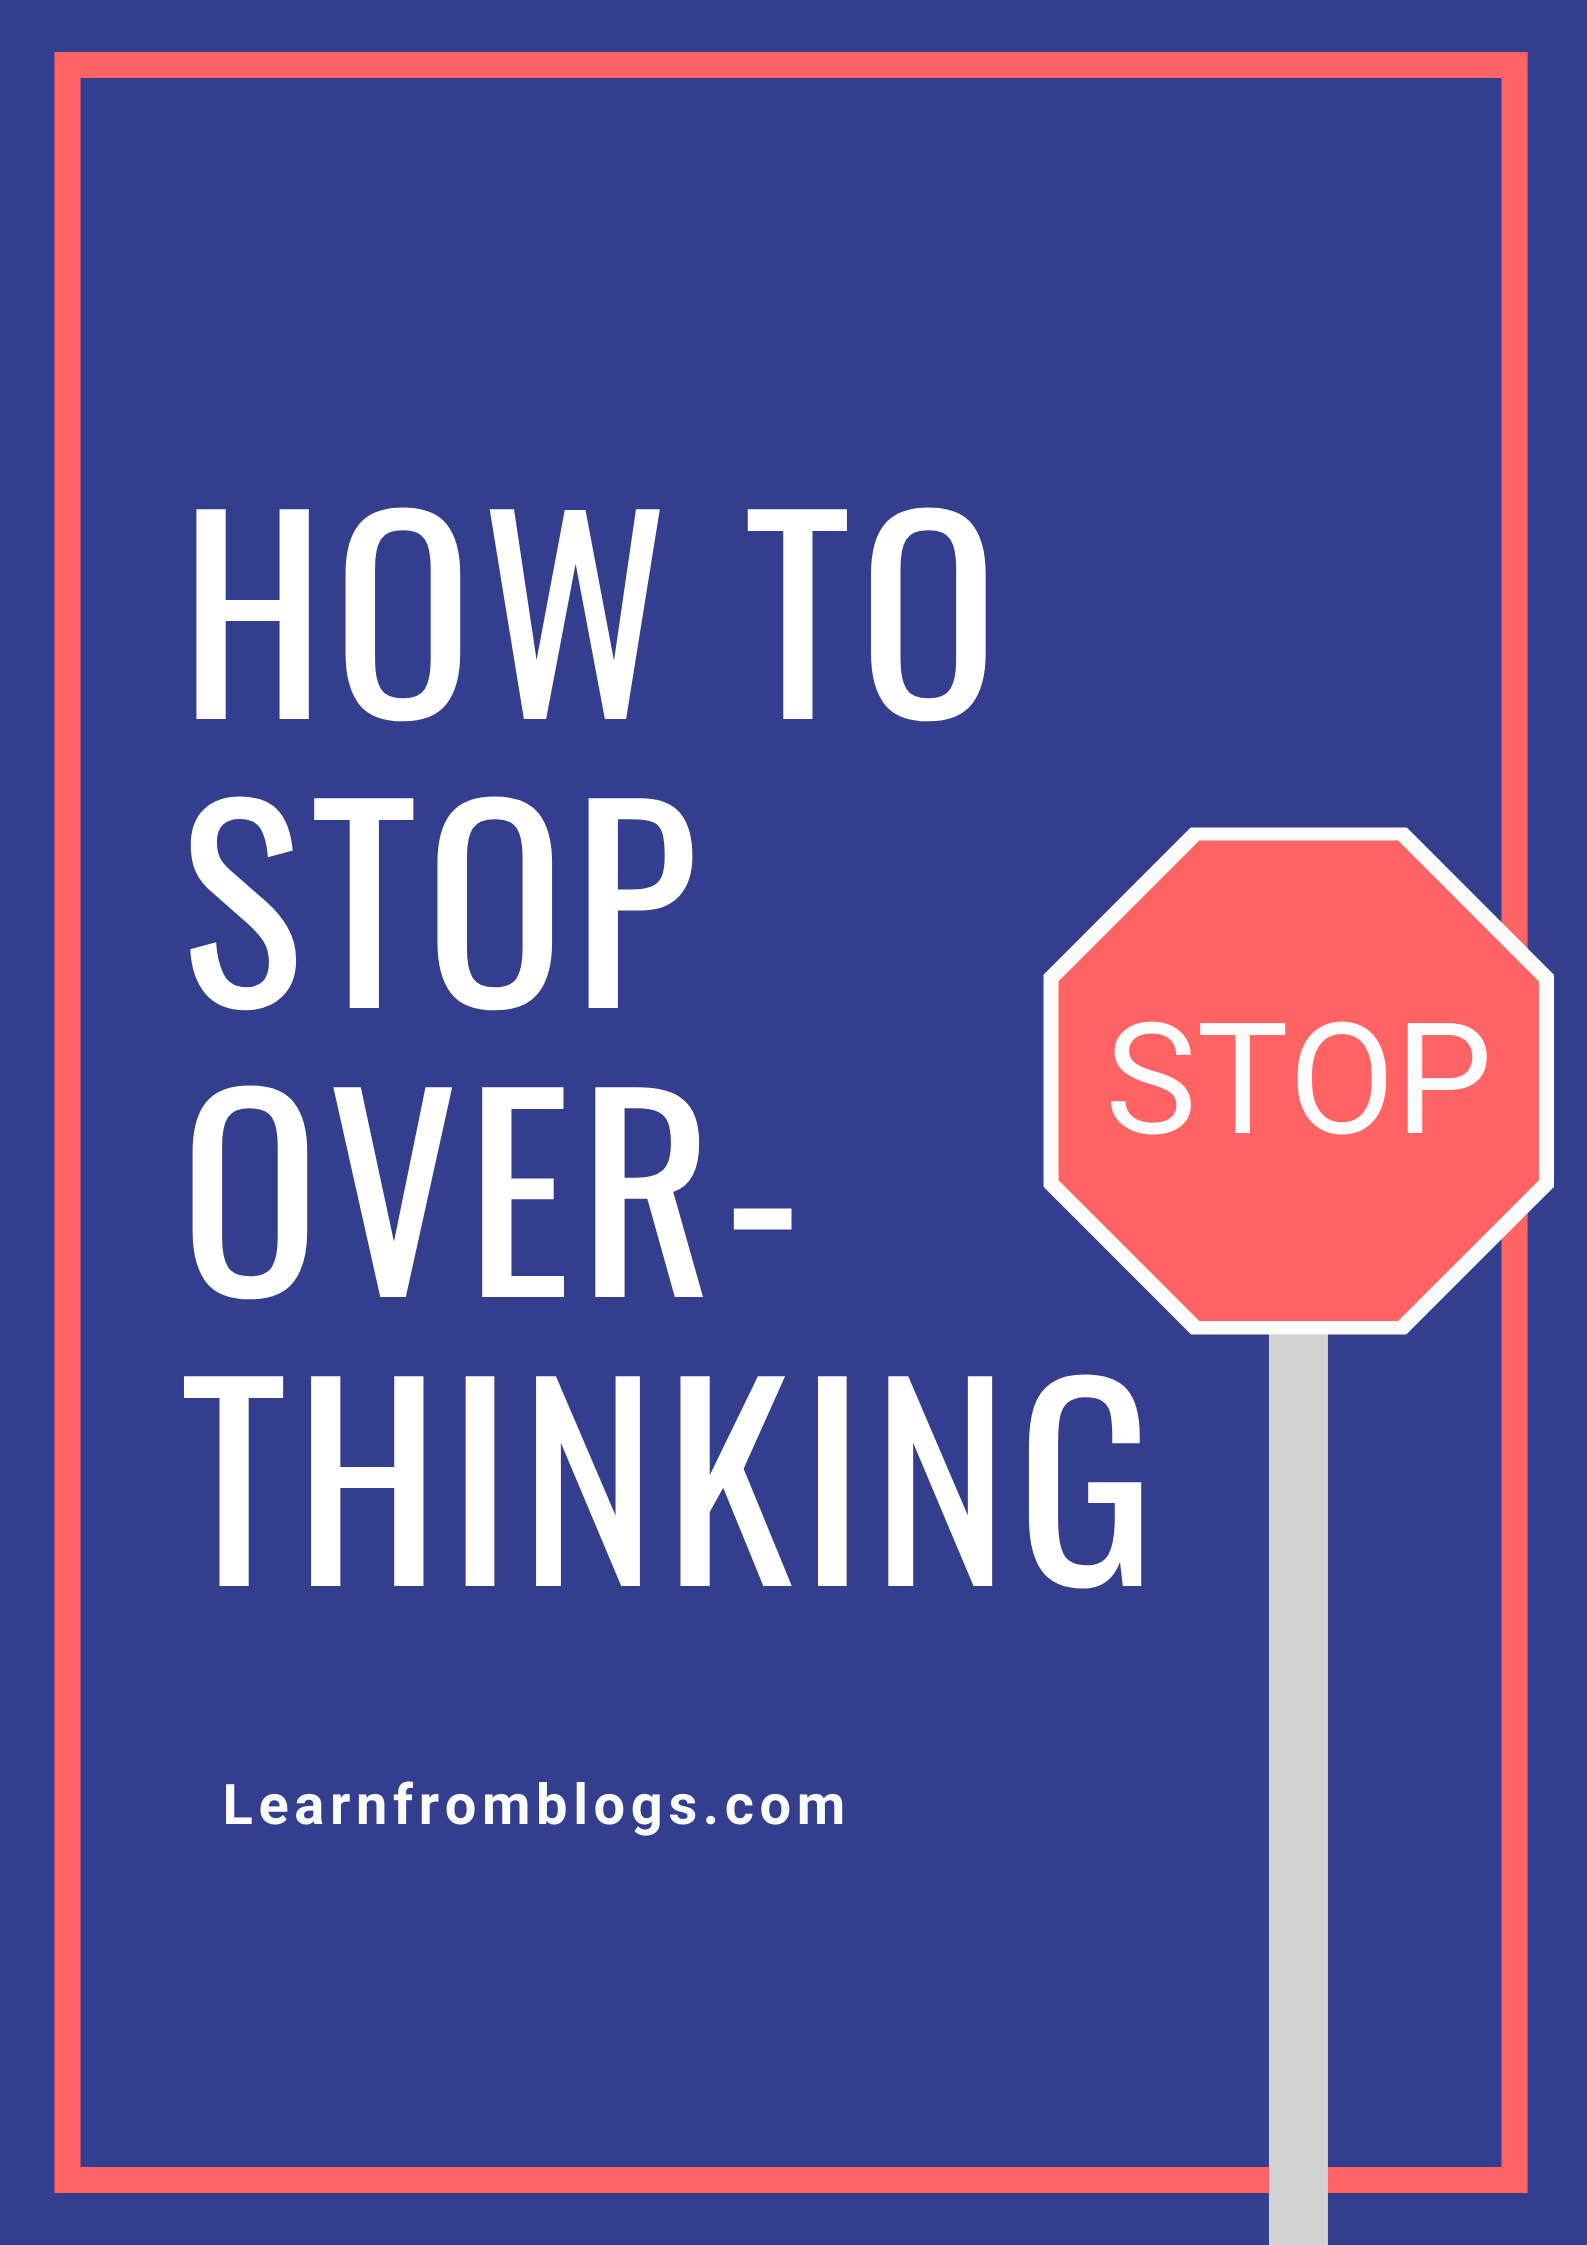 How To Stop Over-Thinking.png